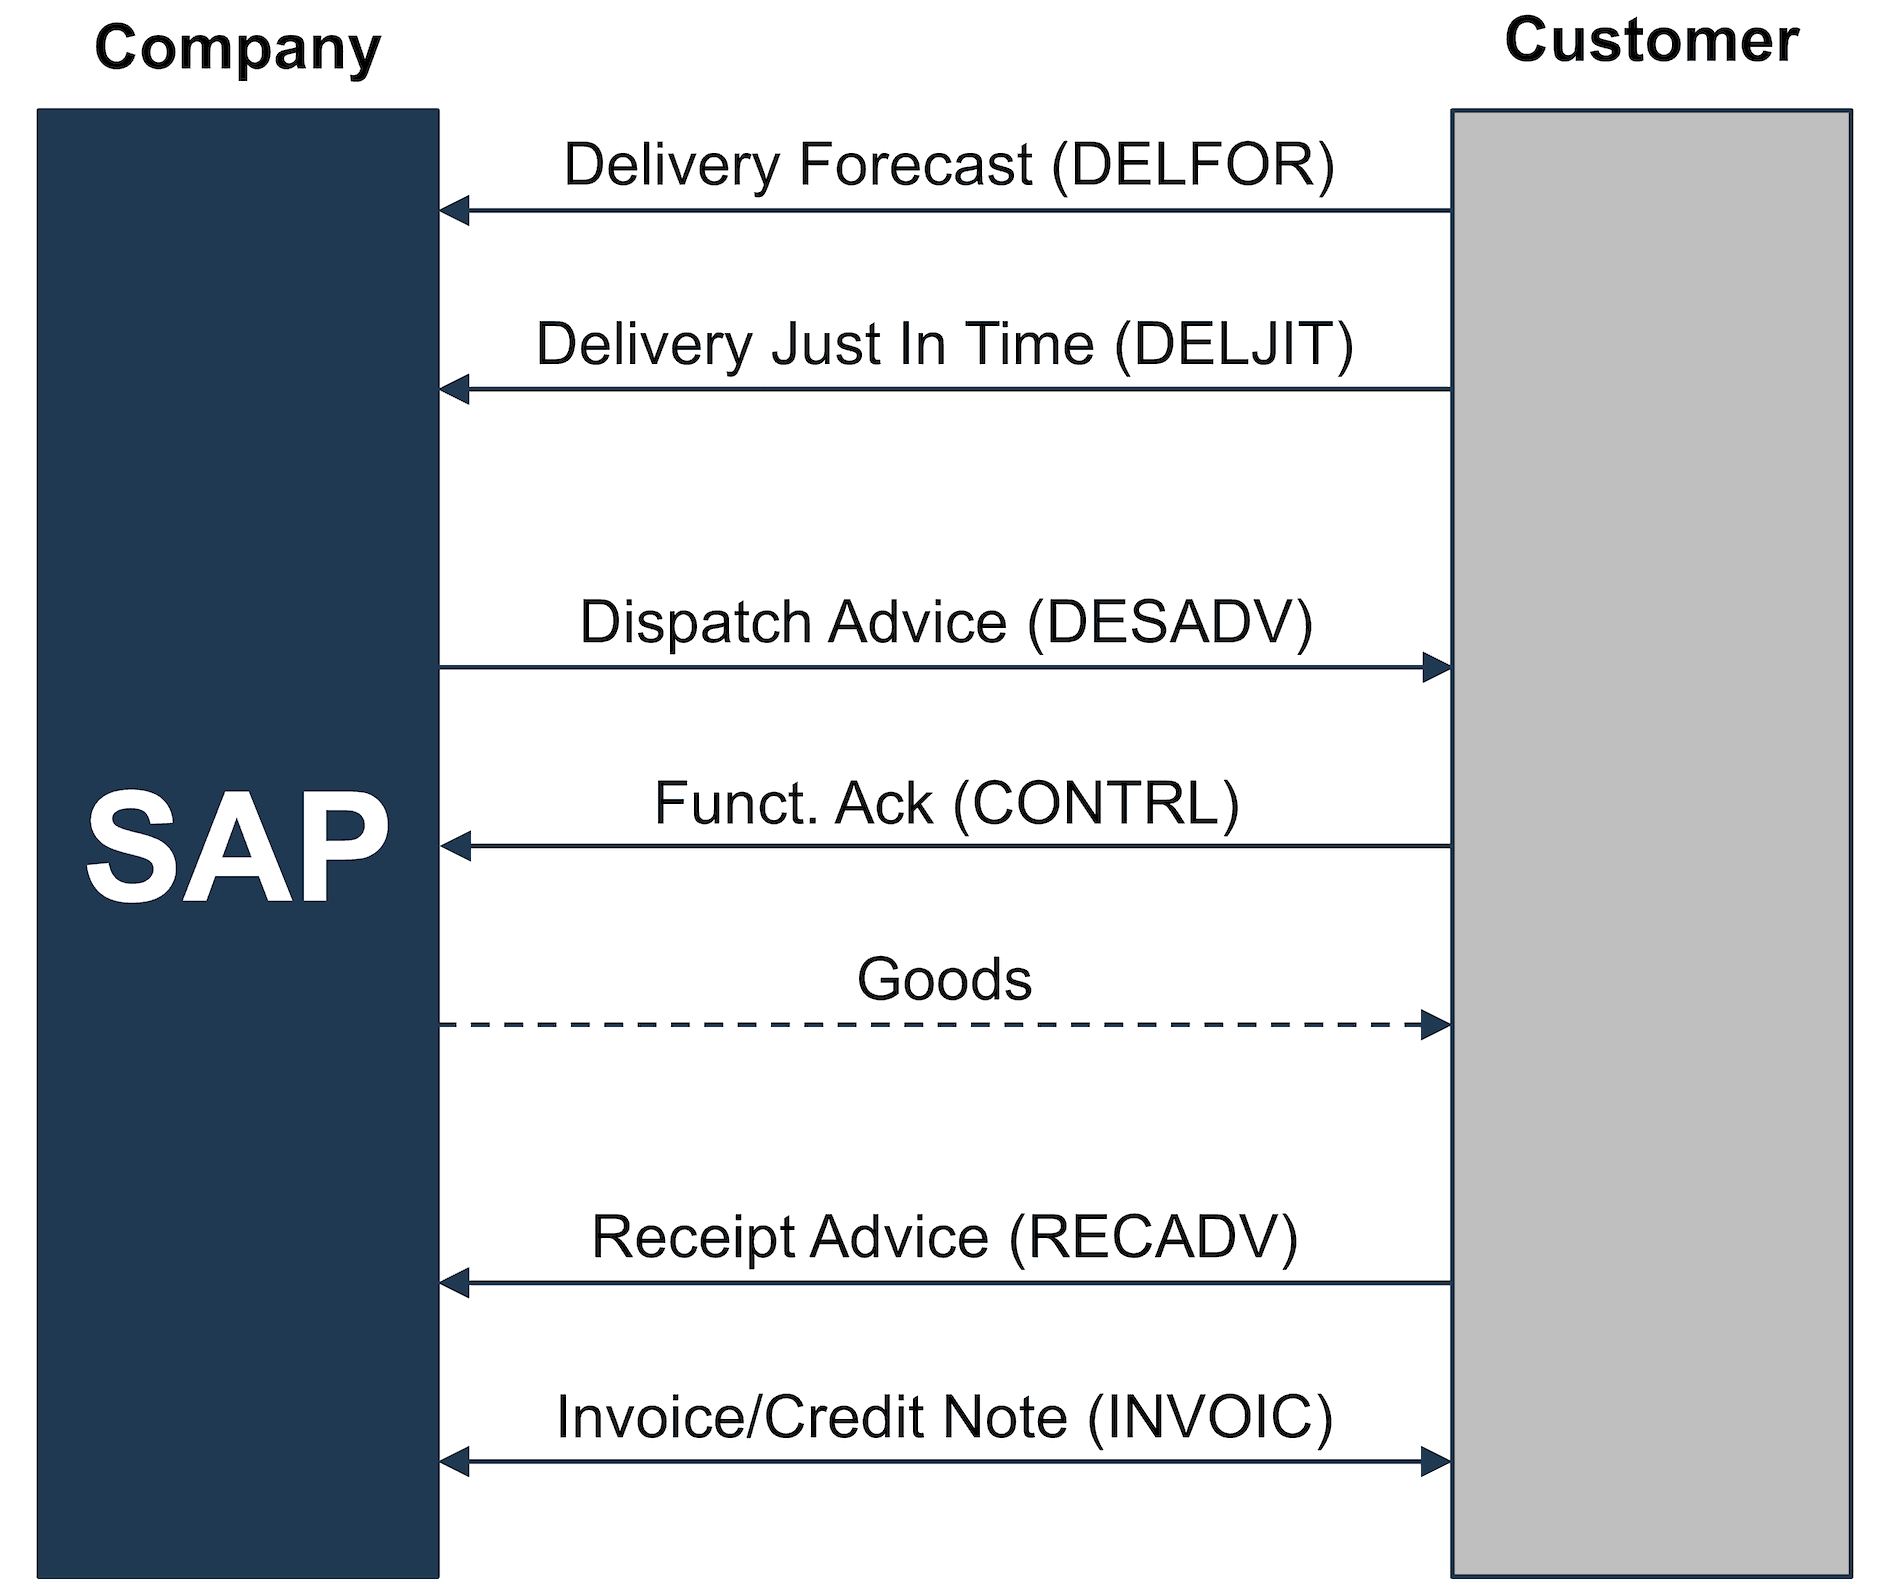 SD Reference Process based on a Scheduling Agreement